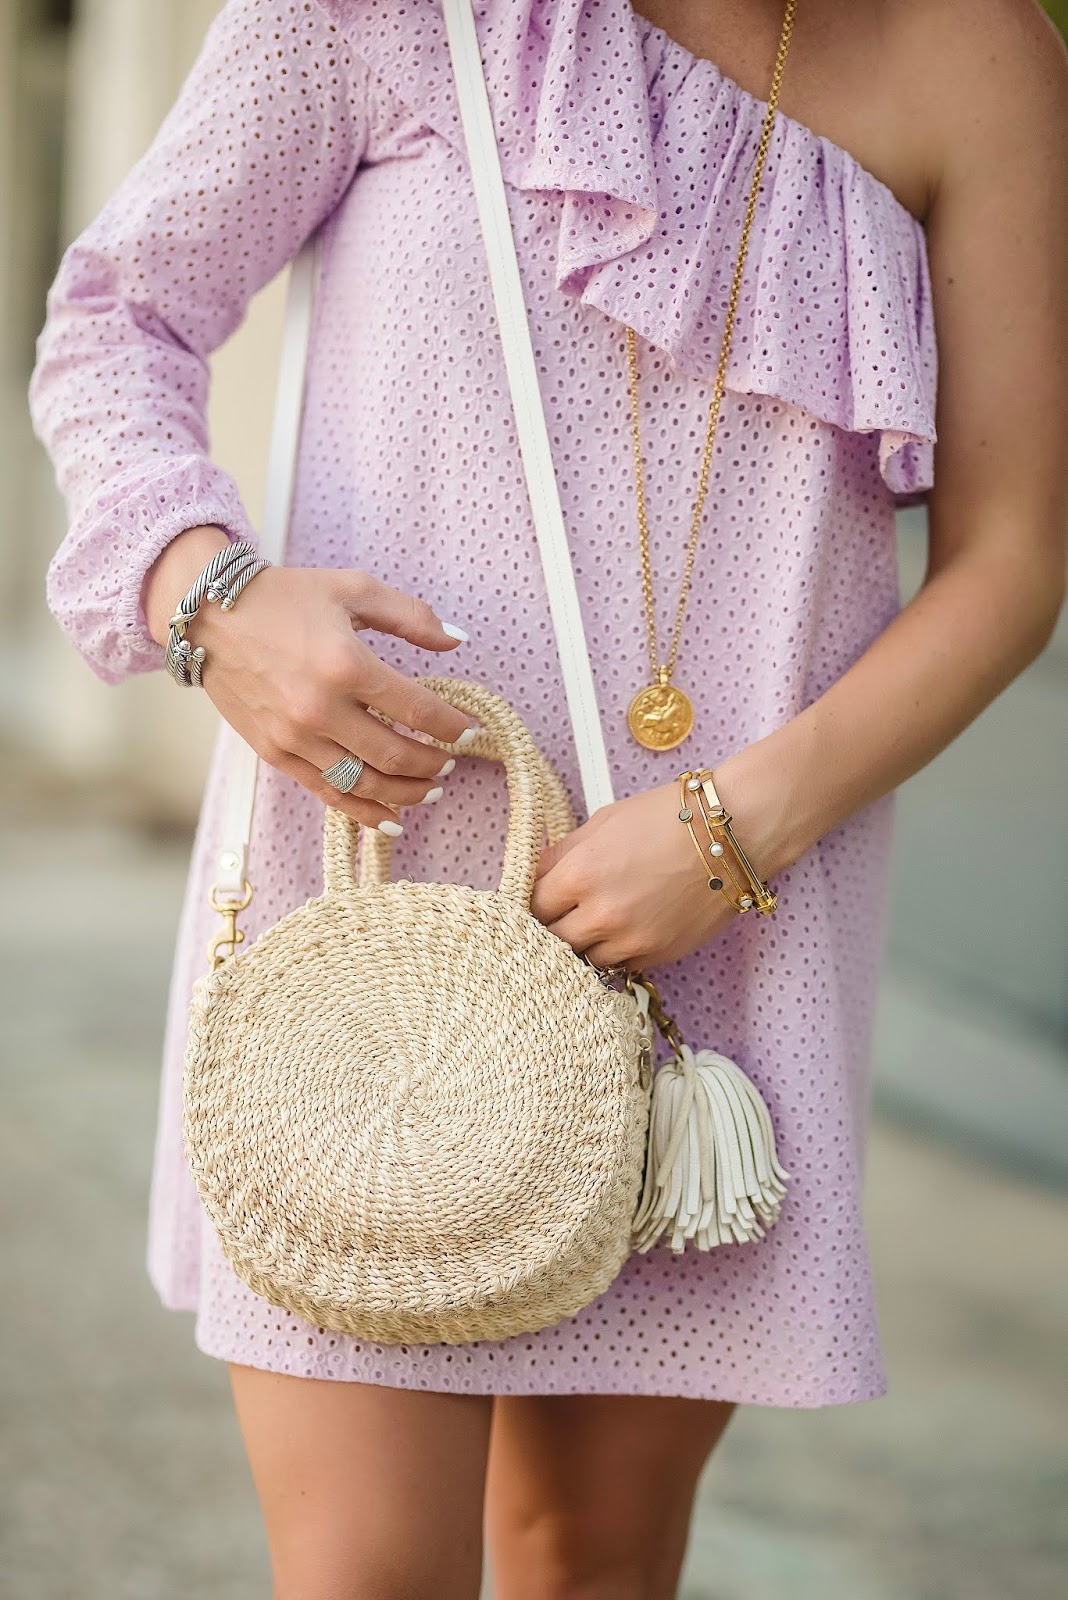 Under $100 Lavender Eyelet One Shoulder Dress + Clare V. Alice Bag - Something Delightful Blog